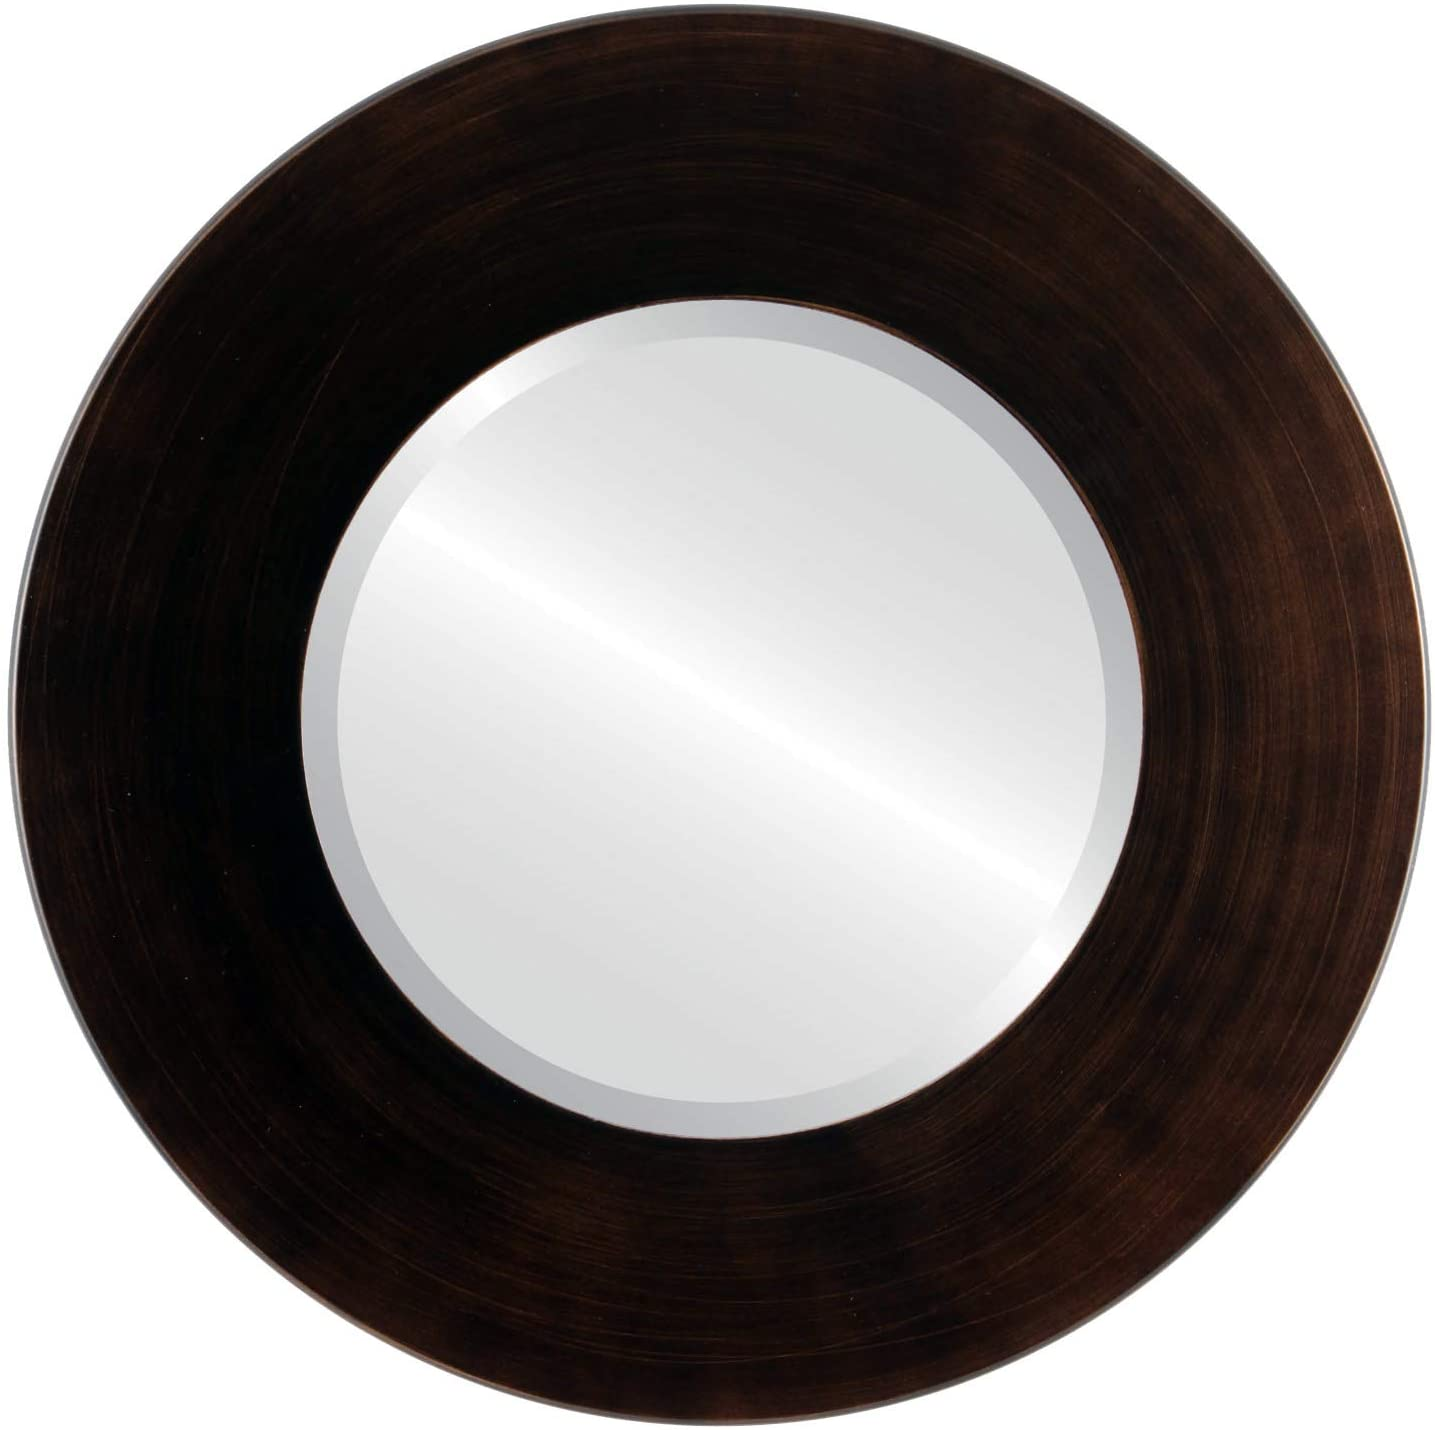 Round Beveled Wall Mirror for Home Decor - Boulevard Style - Rubbed Bronze - 26x26 Outside Dimensions